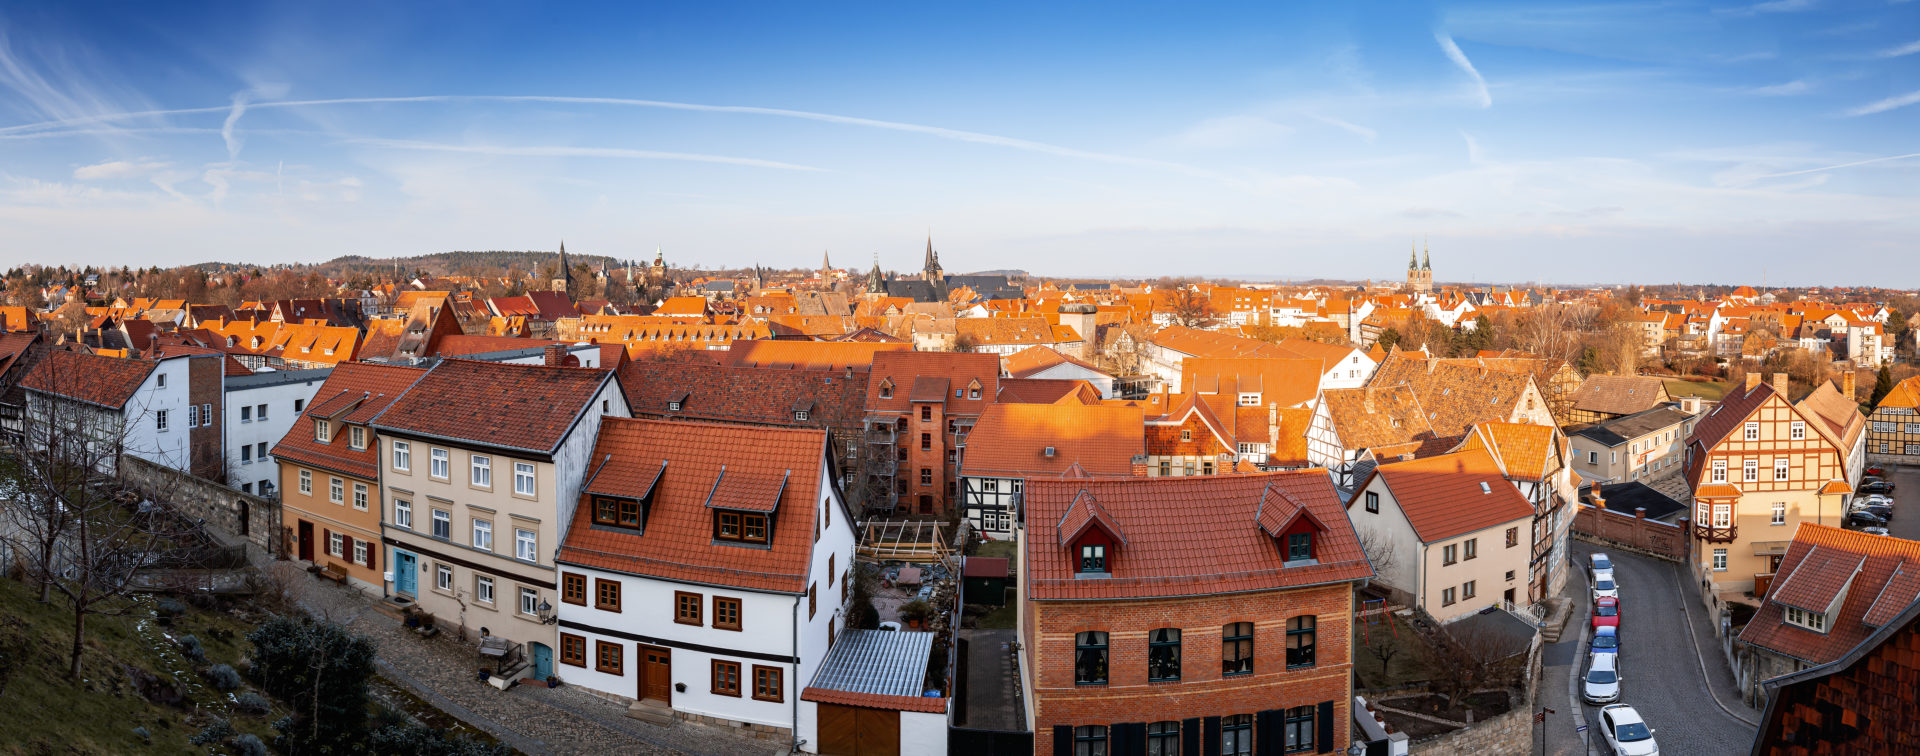 Panorama of Quedlinburg in the Harz Mountains, Saxony-Anhalt, Germany